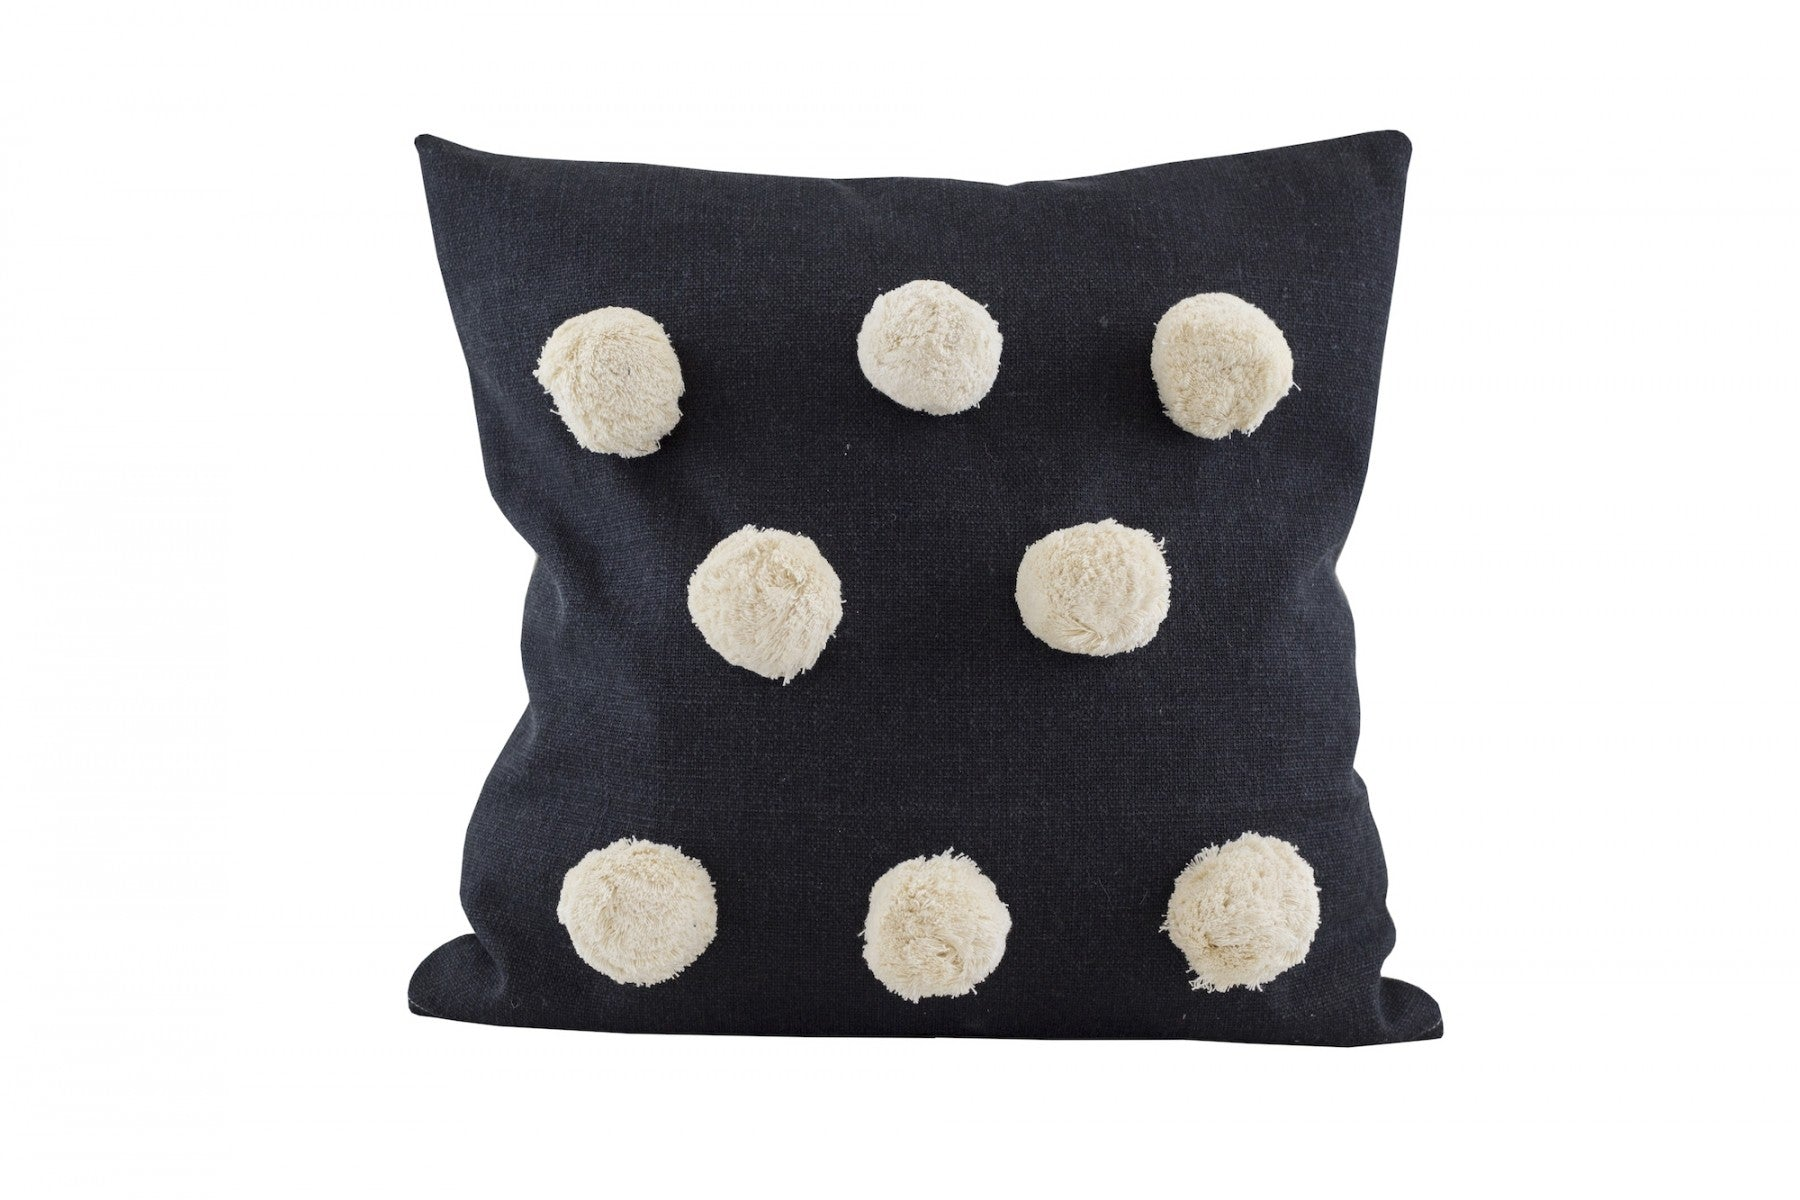 Raine & Humble Giant Pom Pom Cushion